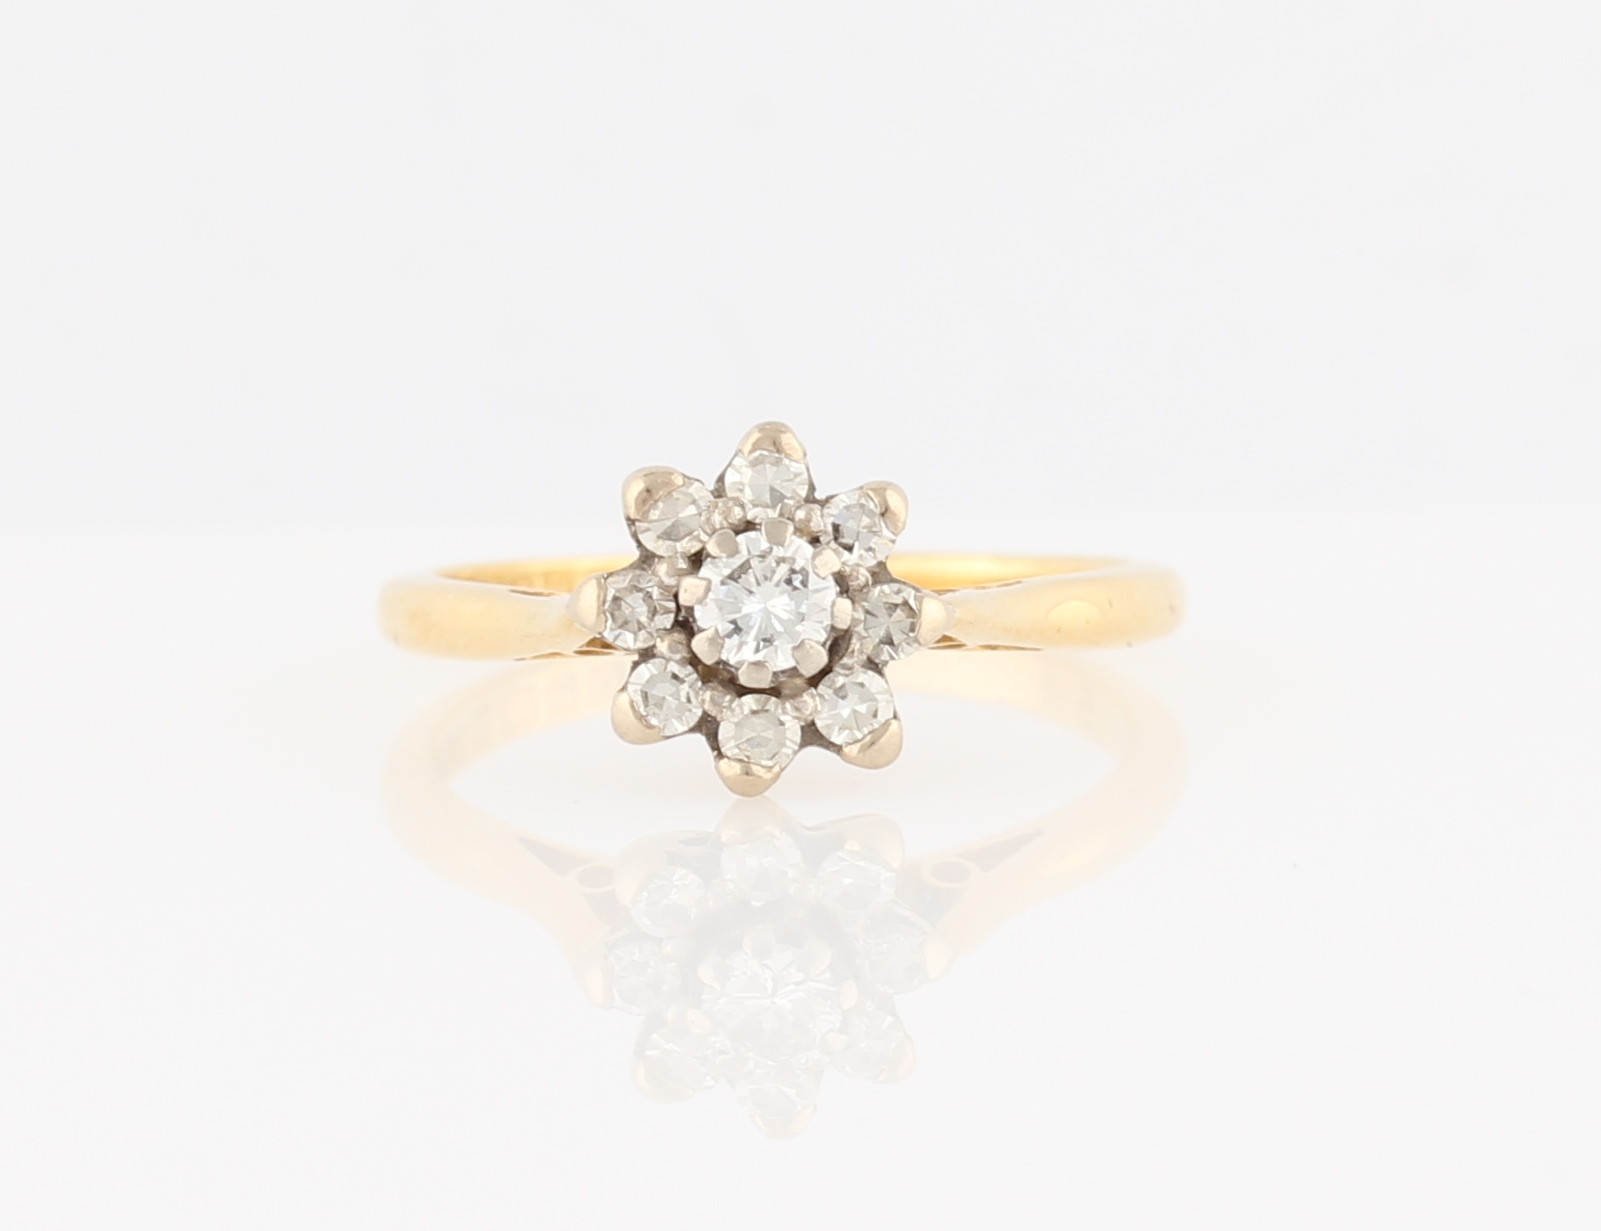 Lot 46 - An 18ct yellow gold diamond flower design ring, set with a central round brilliant cut diamond